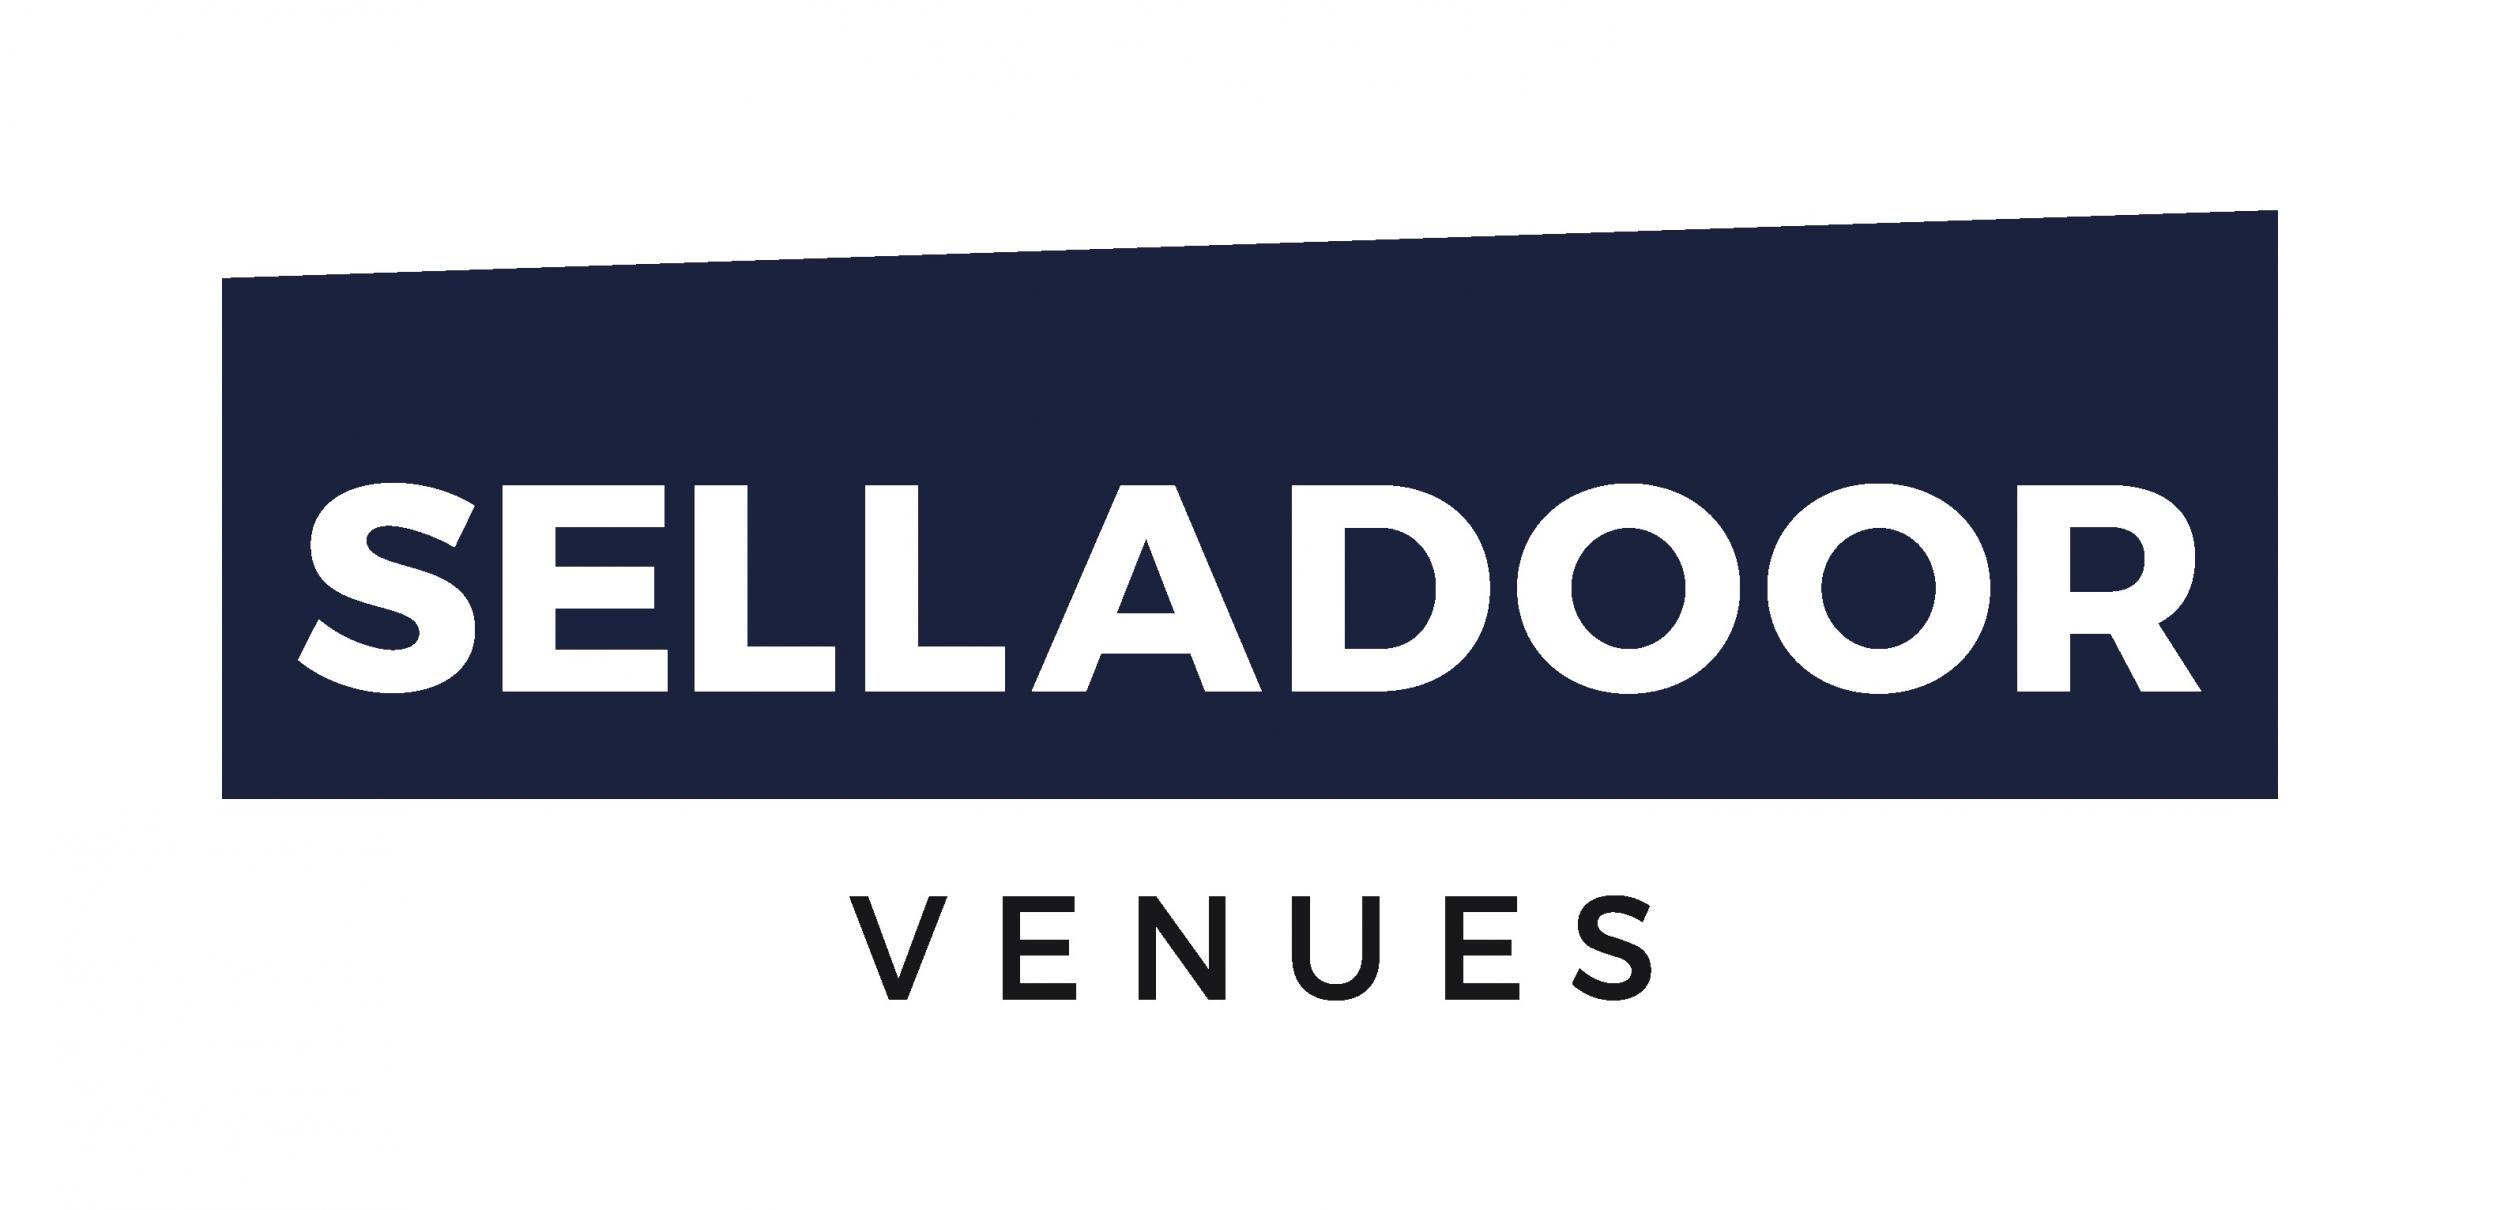 UPDATE: Selladoor announces venues will open for a Christmas season of festive entertainment